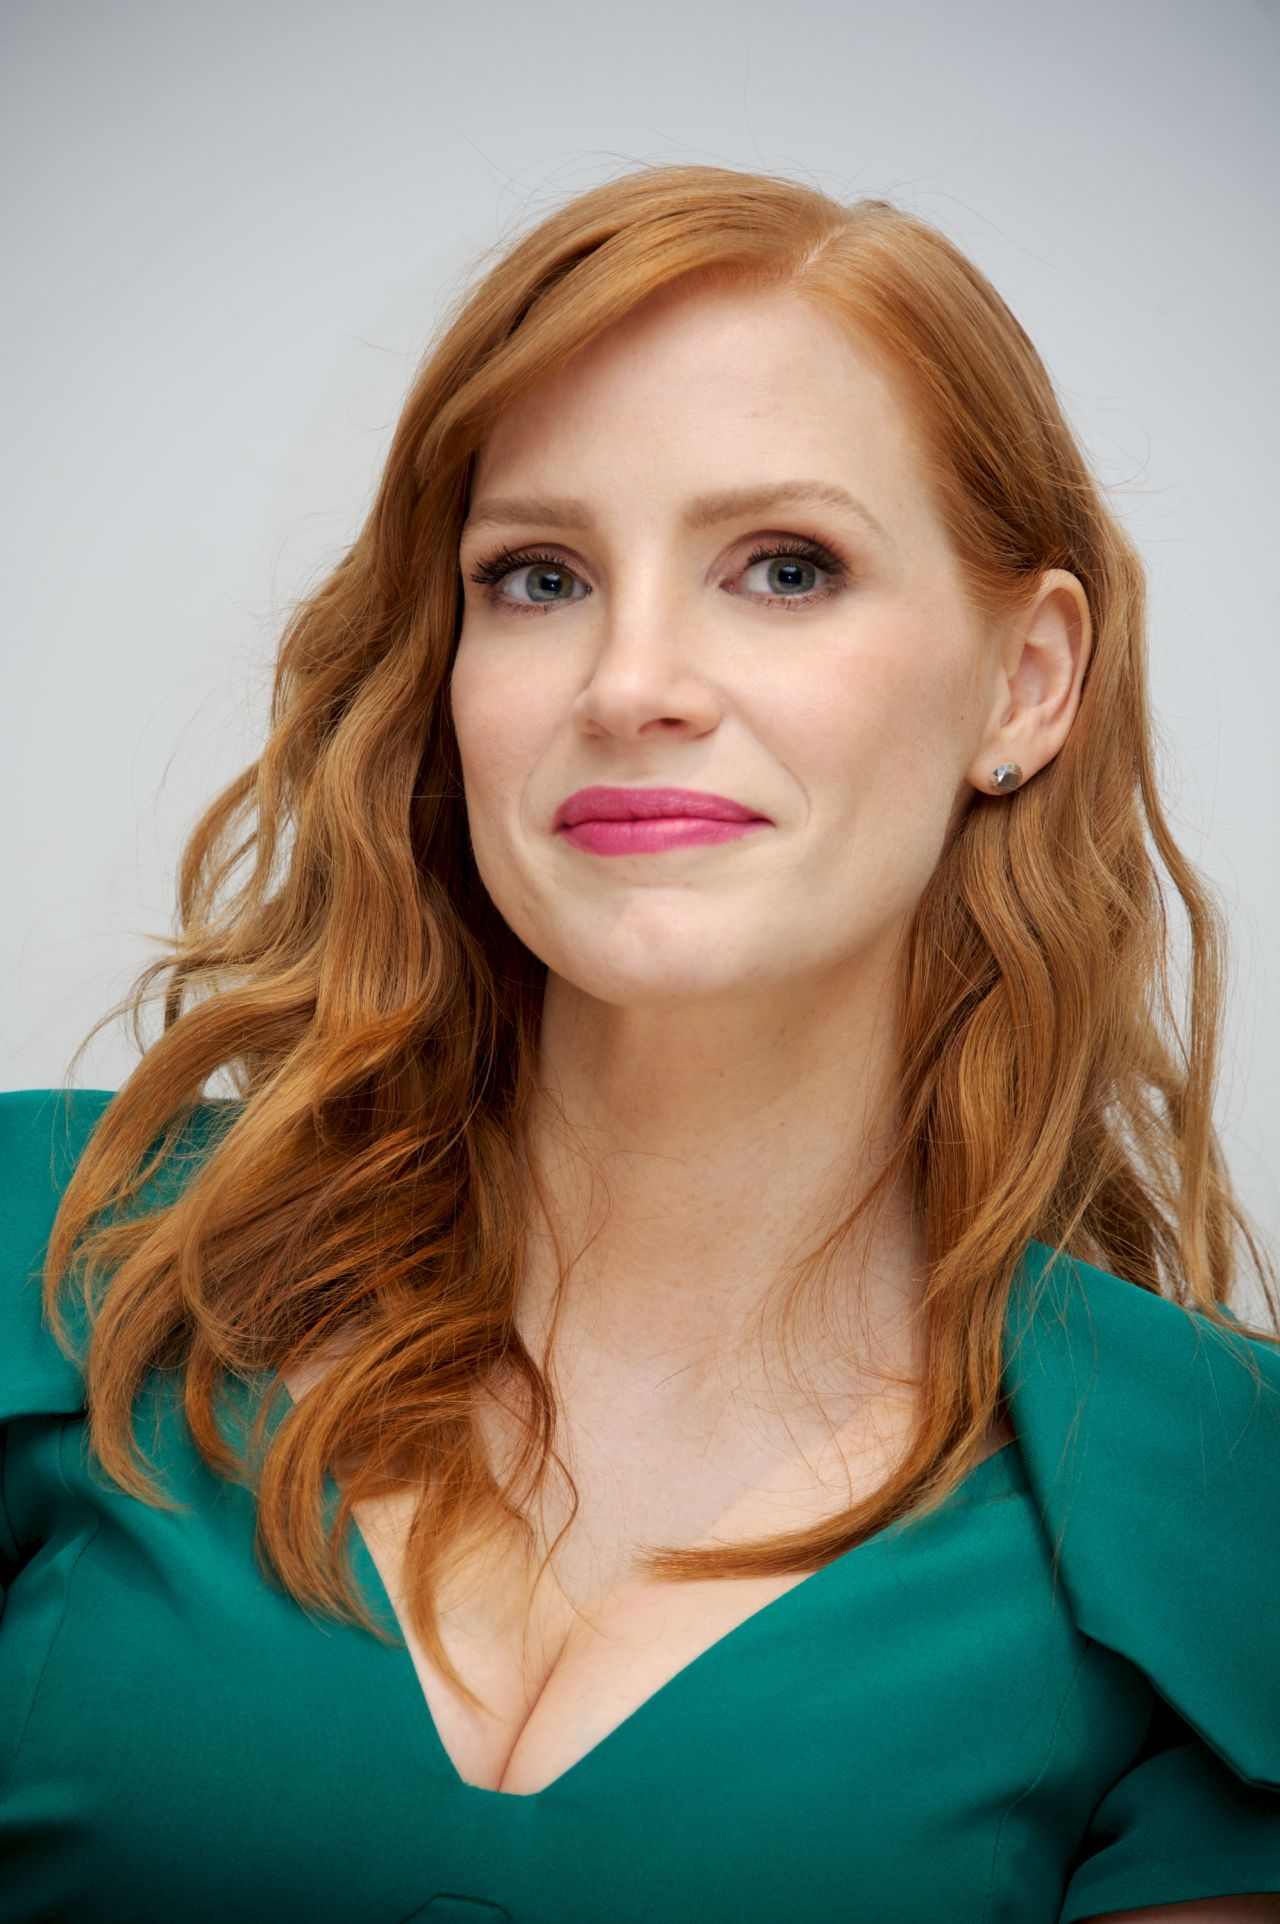 Jessica Chastain - 'A Most Violent Year' Press Conference ... Jessica Chastain